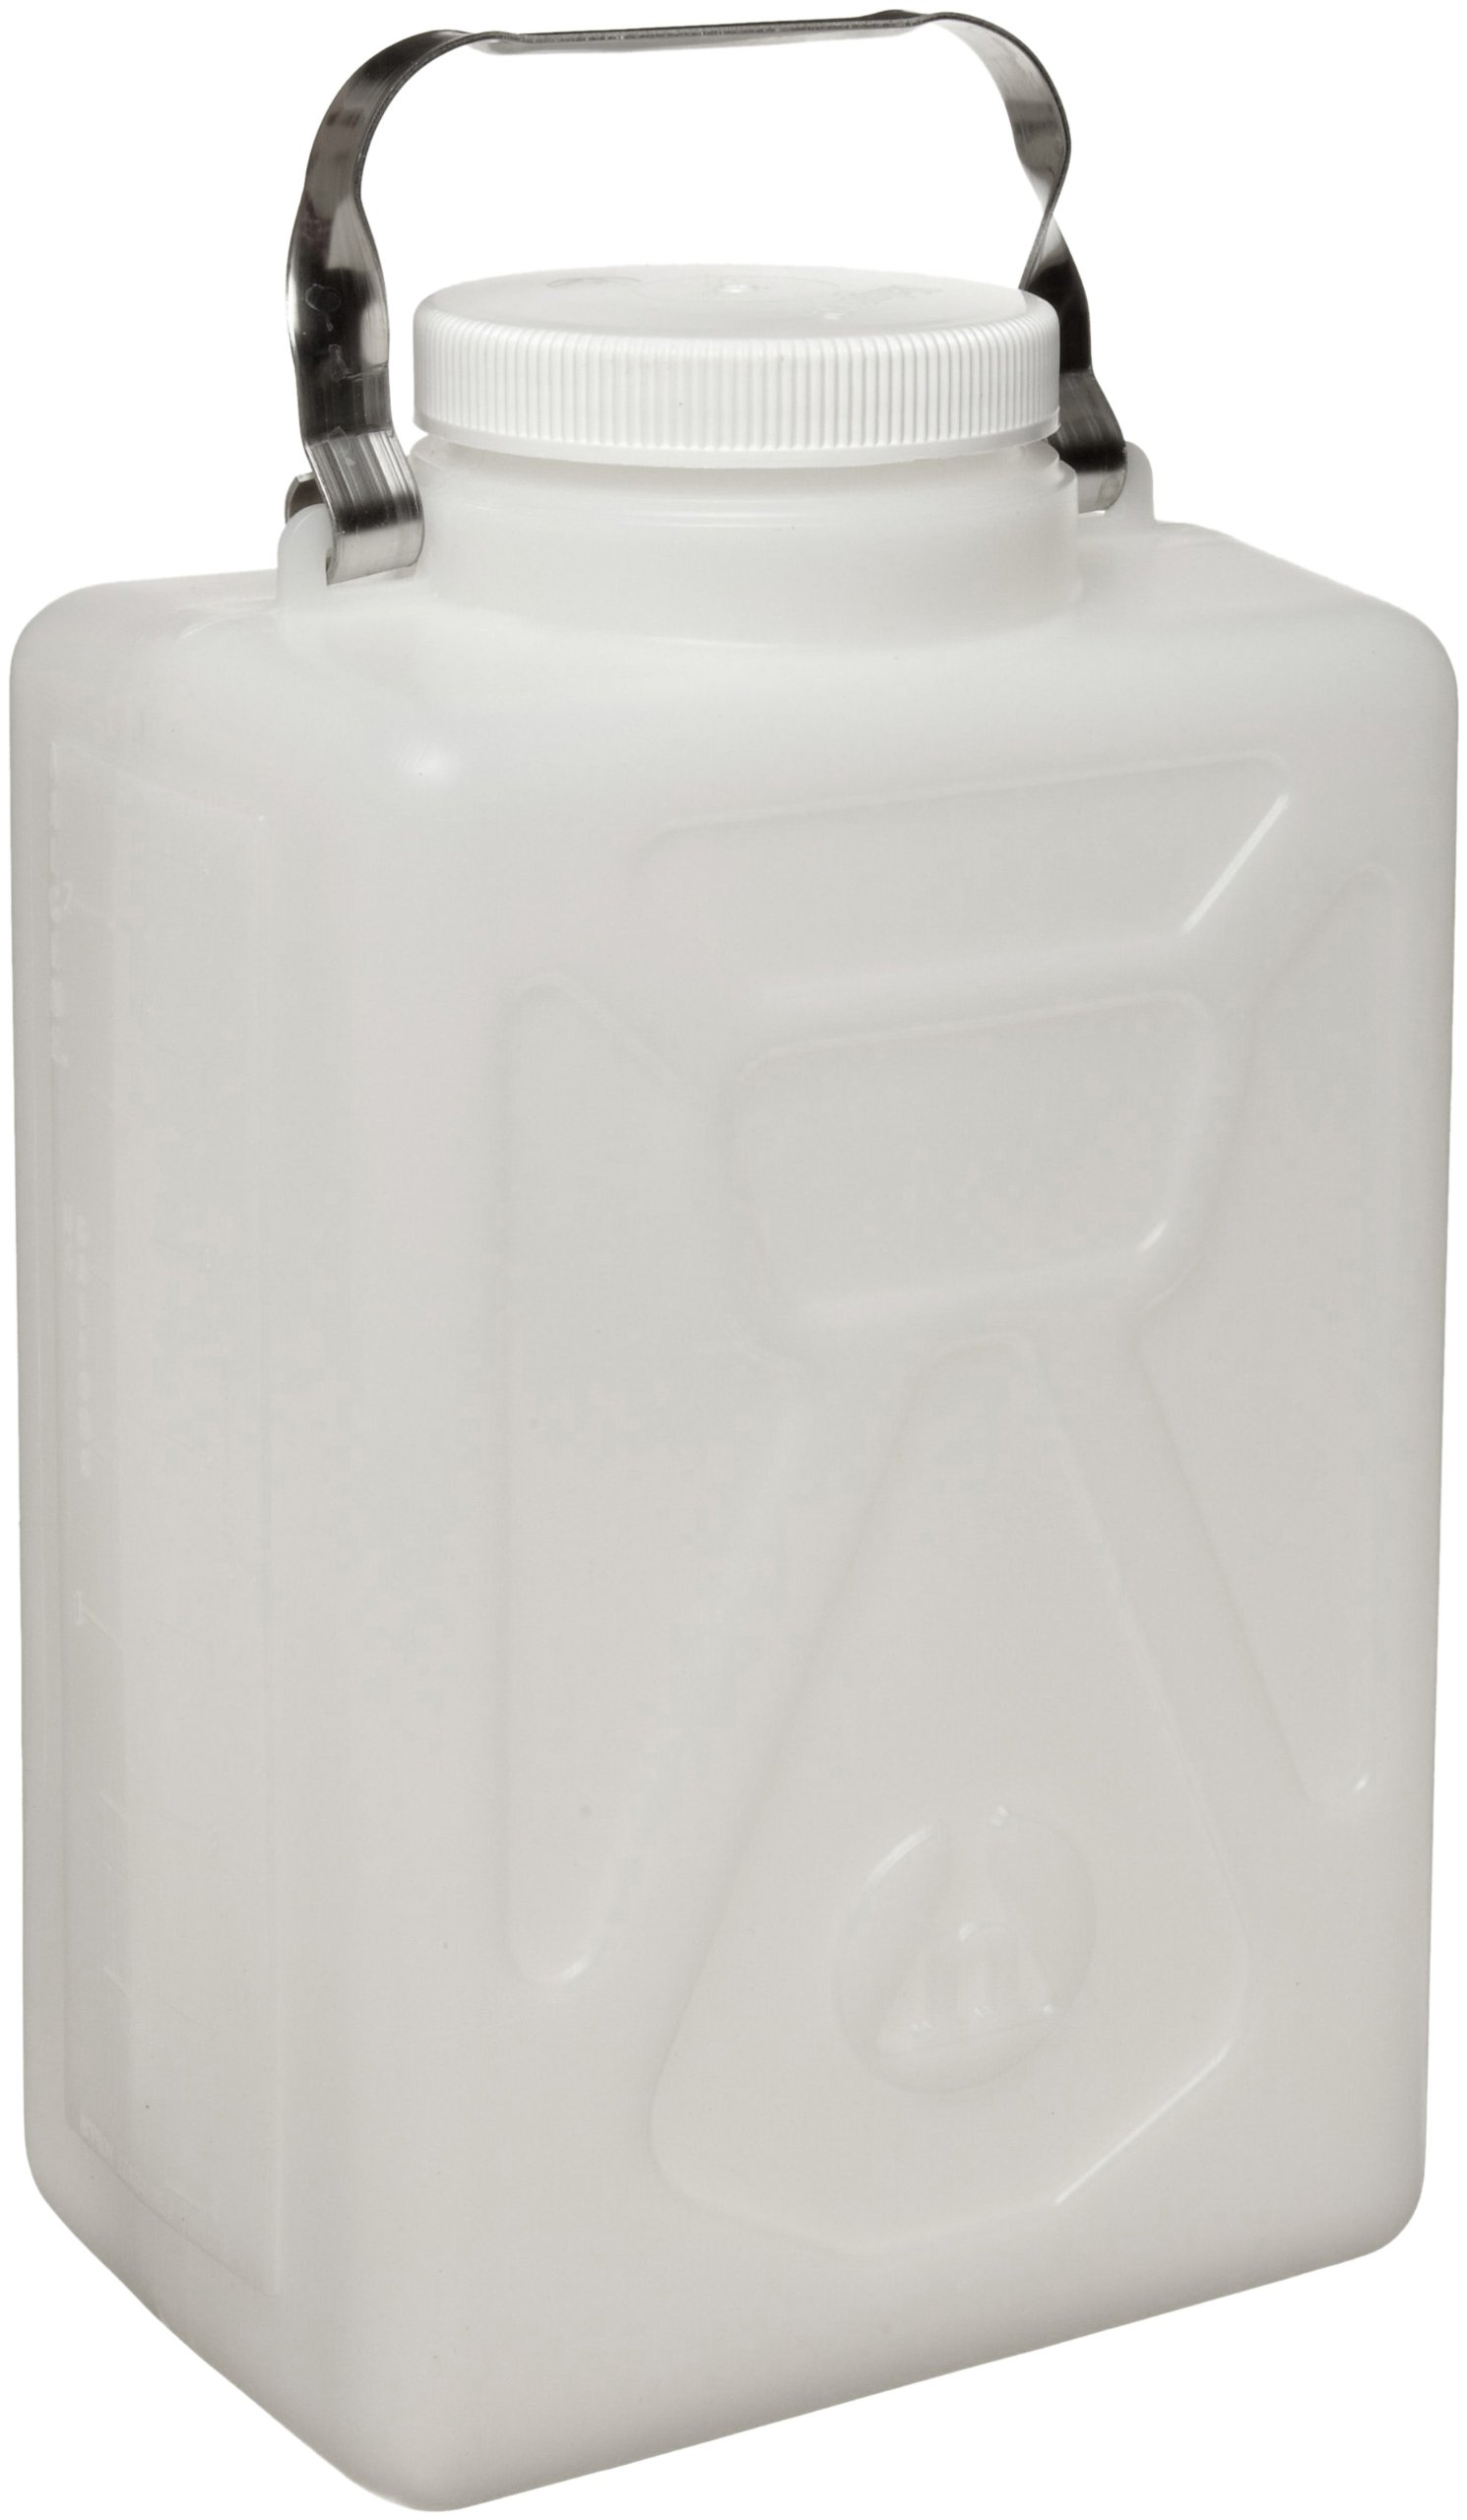 Nalgene 2211-0020 HDPE Graduated Carboy with Stainless Steel Handle and Polypropylene Screw Closure, Rectangular, 9L Capacity, 8-1/2'' Length x 5-3/4'' Width x 13-1/2'' Height